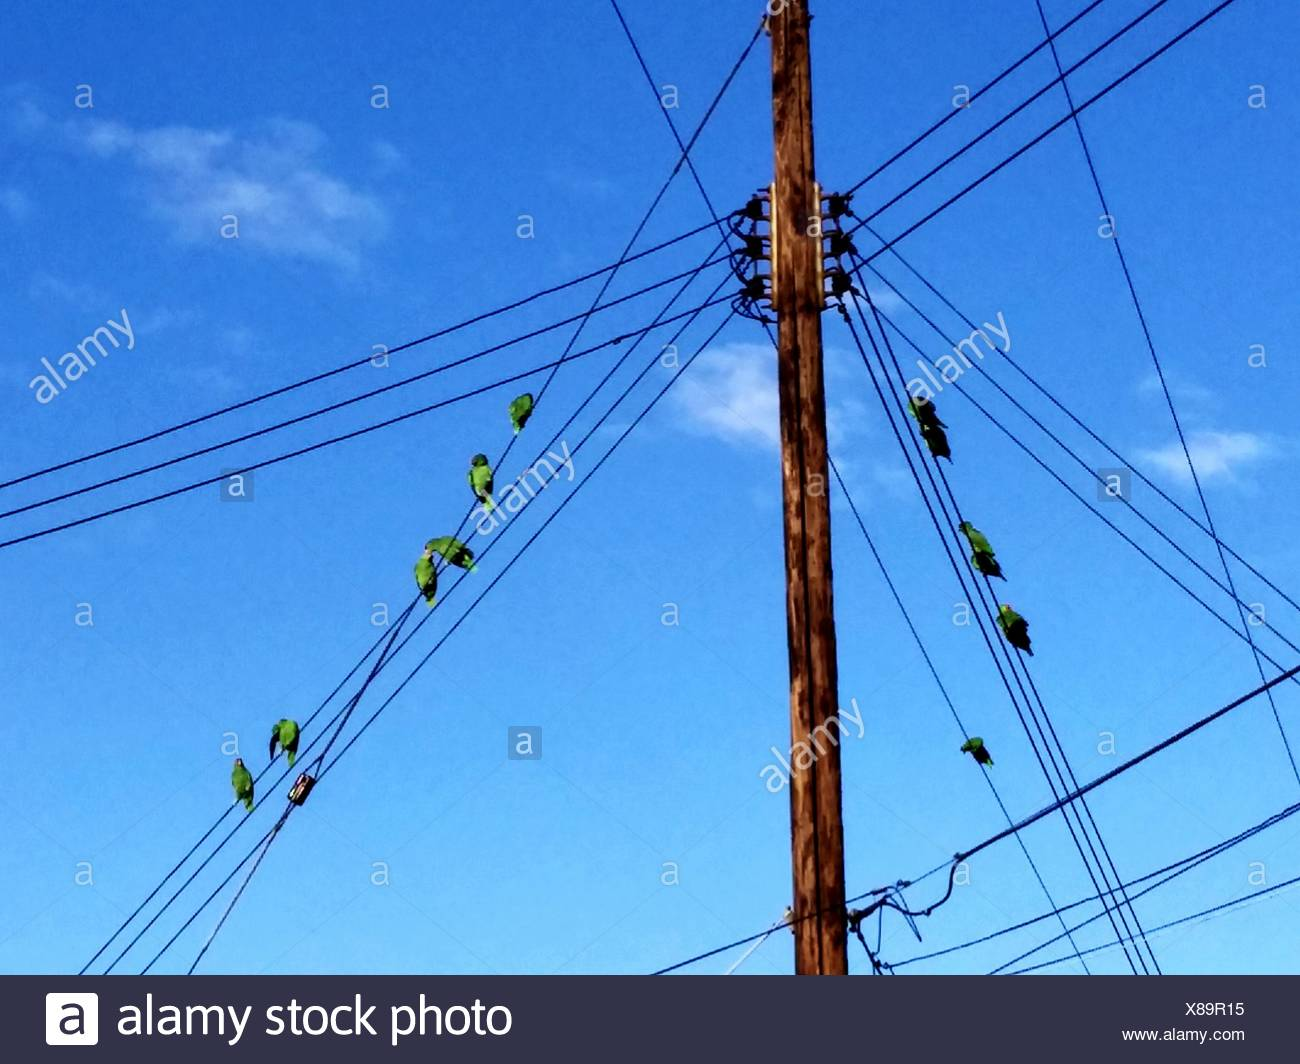 Flock Of Birds Perching On Power Cables Stock Photo